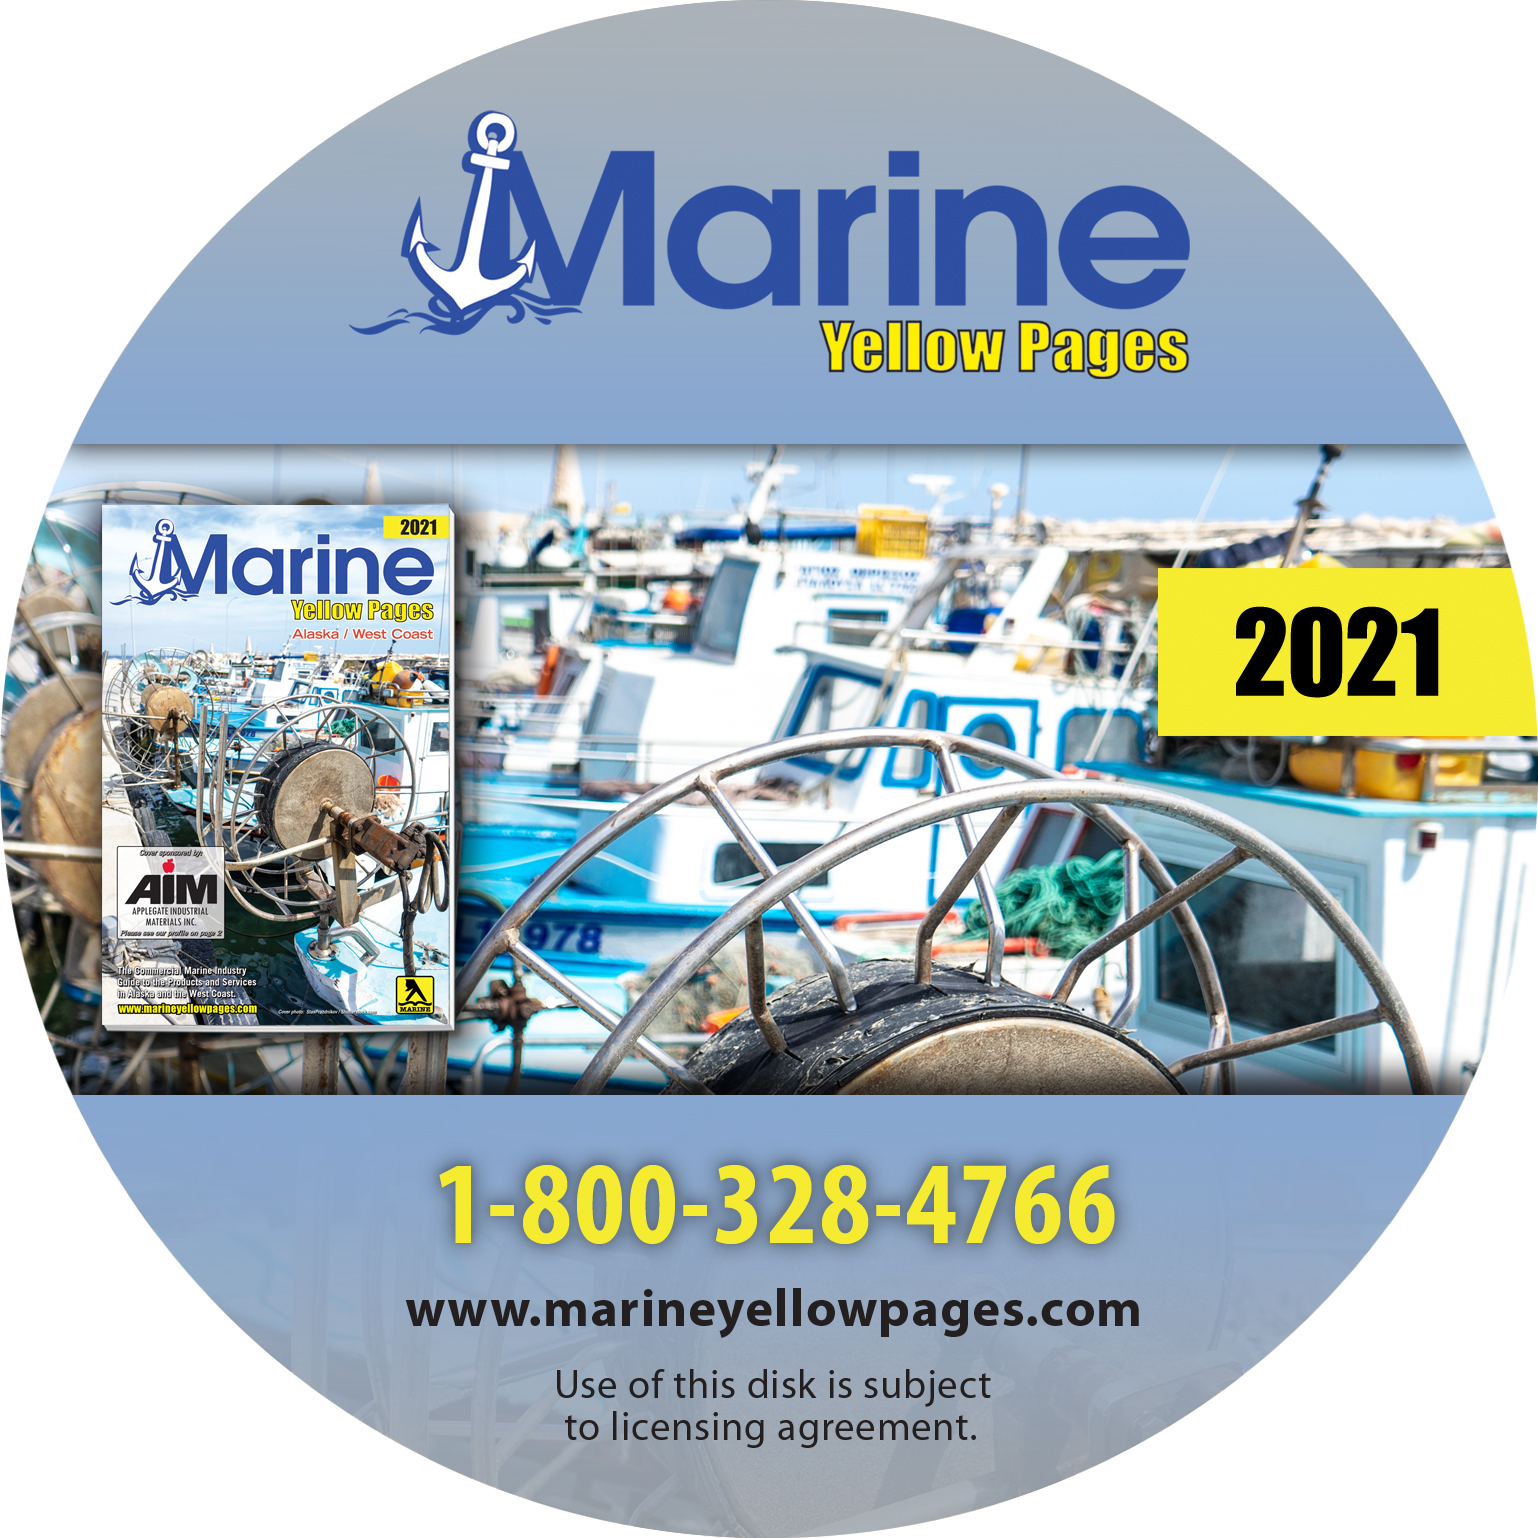 resized/cdlabelmarineyellowpages2021-awc